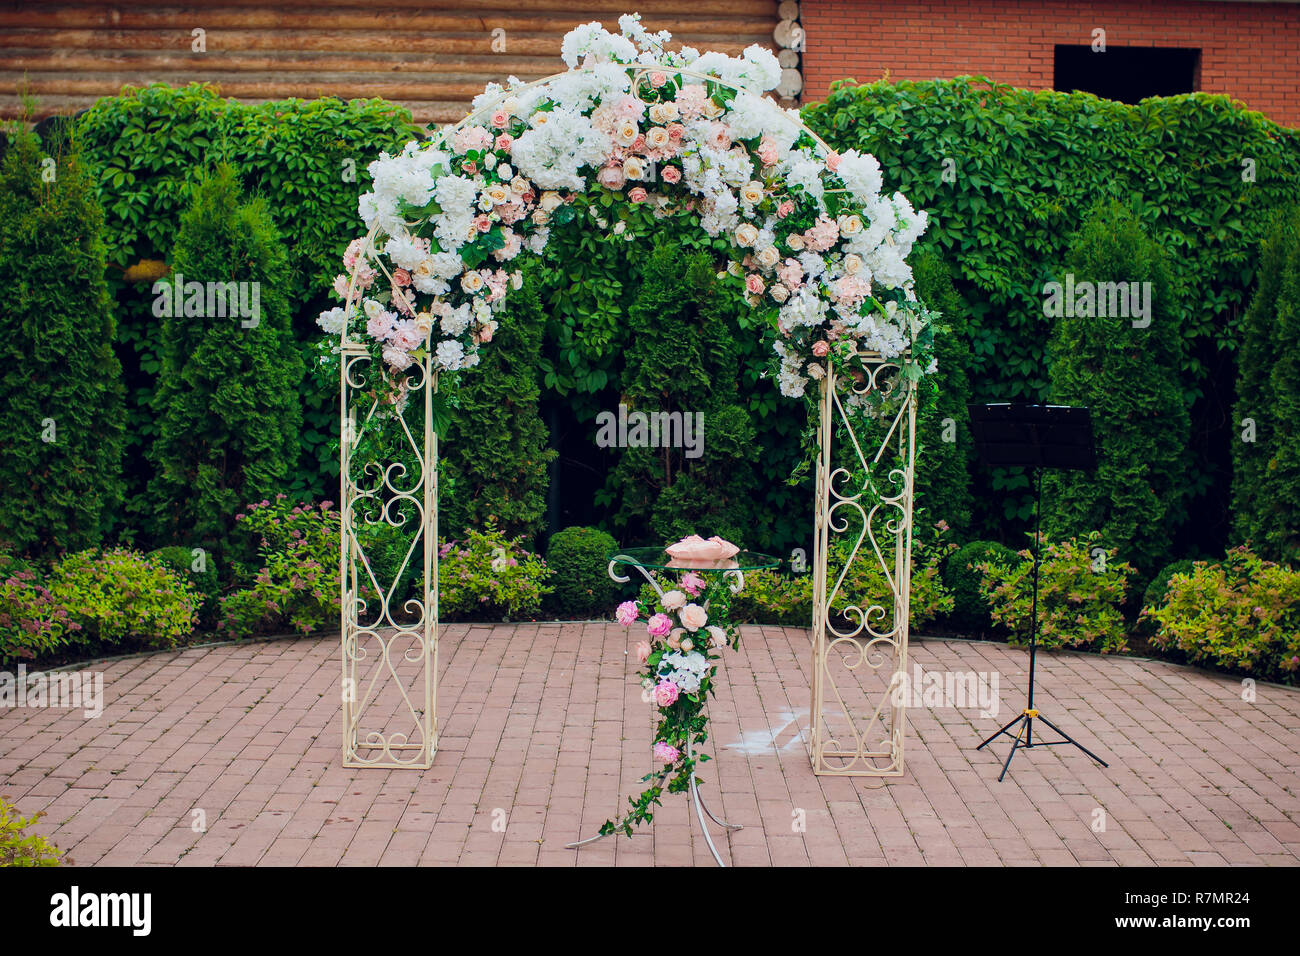 Open Air Wedding Ceremony With Eucalyptus Wedding Arch Decorated